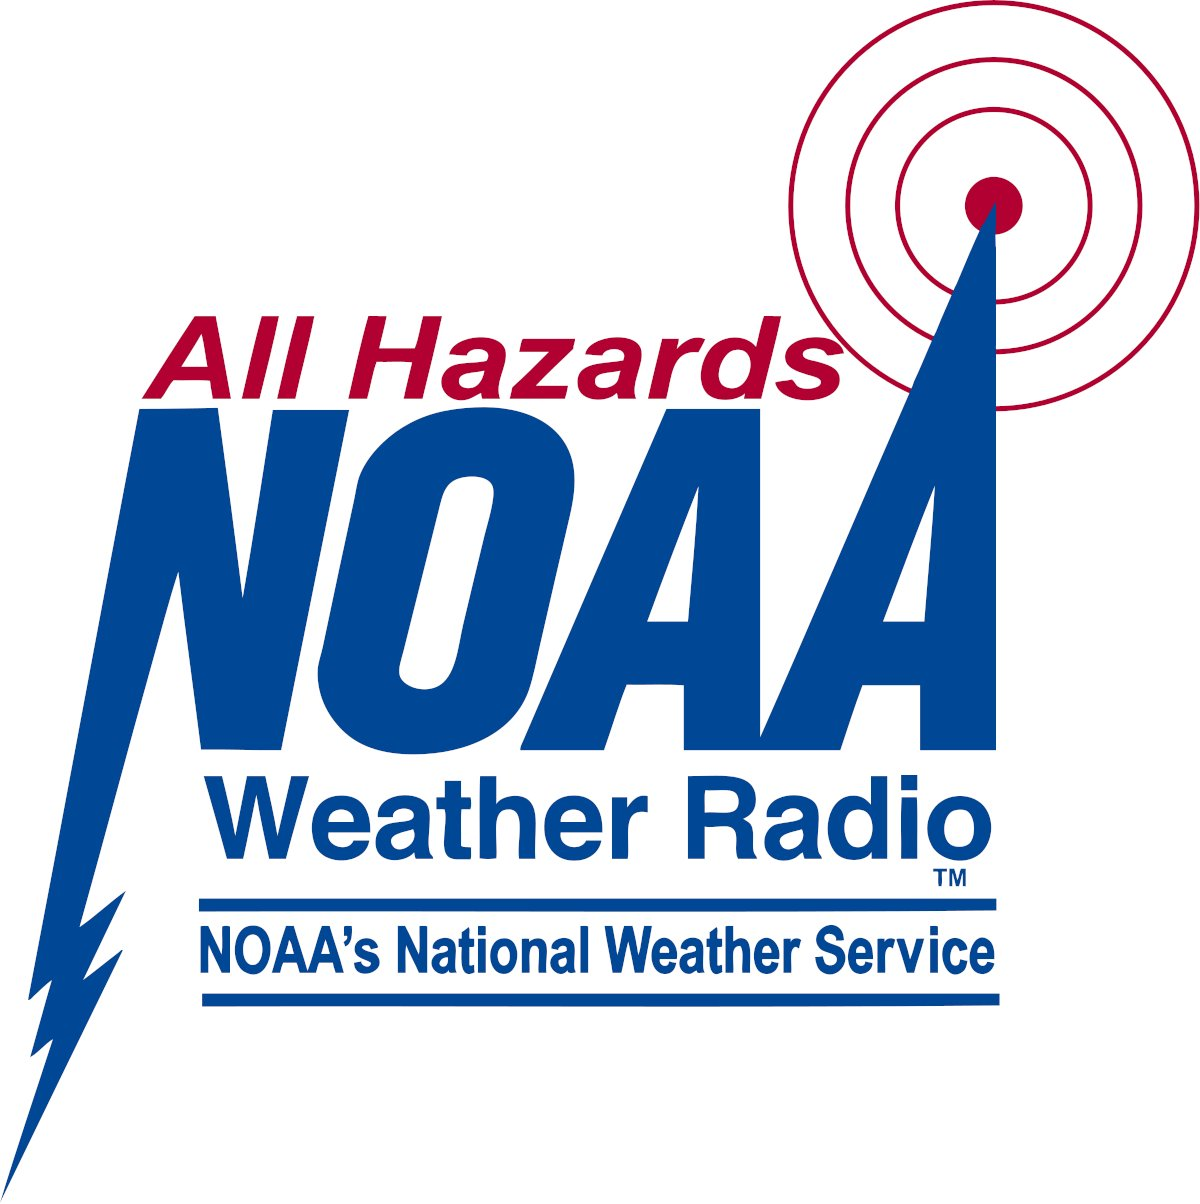 Nws La Crosse On Twitter Just A Heads Up Our Noaa Weather Radio Stations Broadcasting From St Ansgar Iowa And Richland Center Wi Are Off The Air This Morning Due To A Official account for ncaa lacrosse. twitter